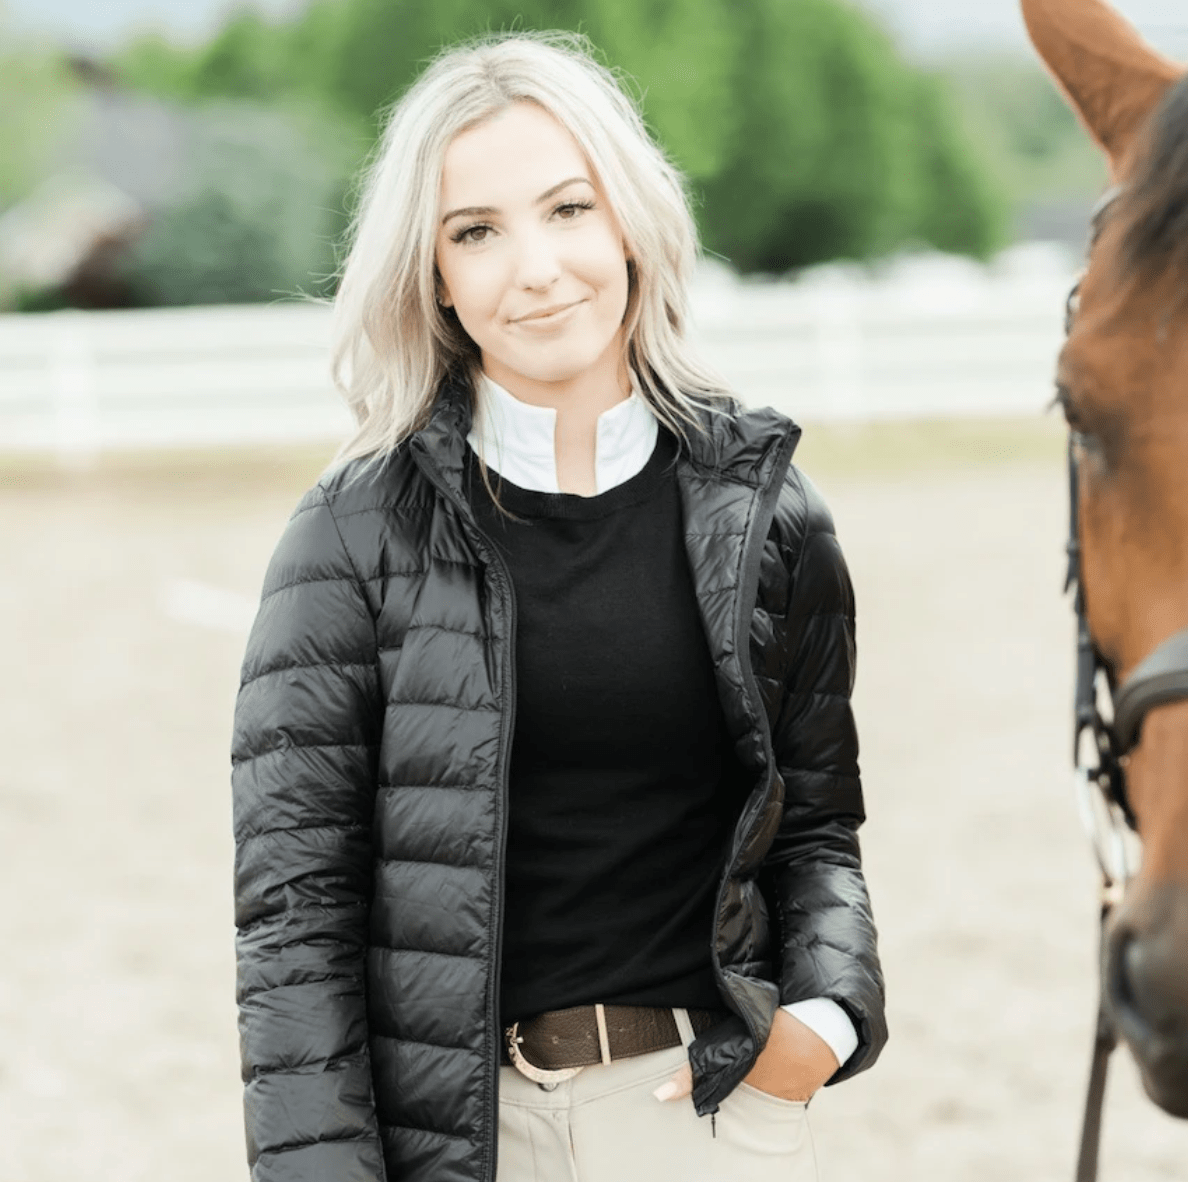 TKEQ Jacket XS EZ Packable Down Jacket- Classic Black equestrian team apparel online tack store mobile tack store custom farm apparel custom show stable clothing equestrian lifestyle horse show clothing riding clothes horses equestrian tack store